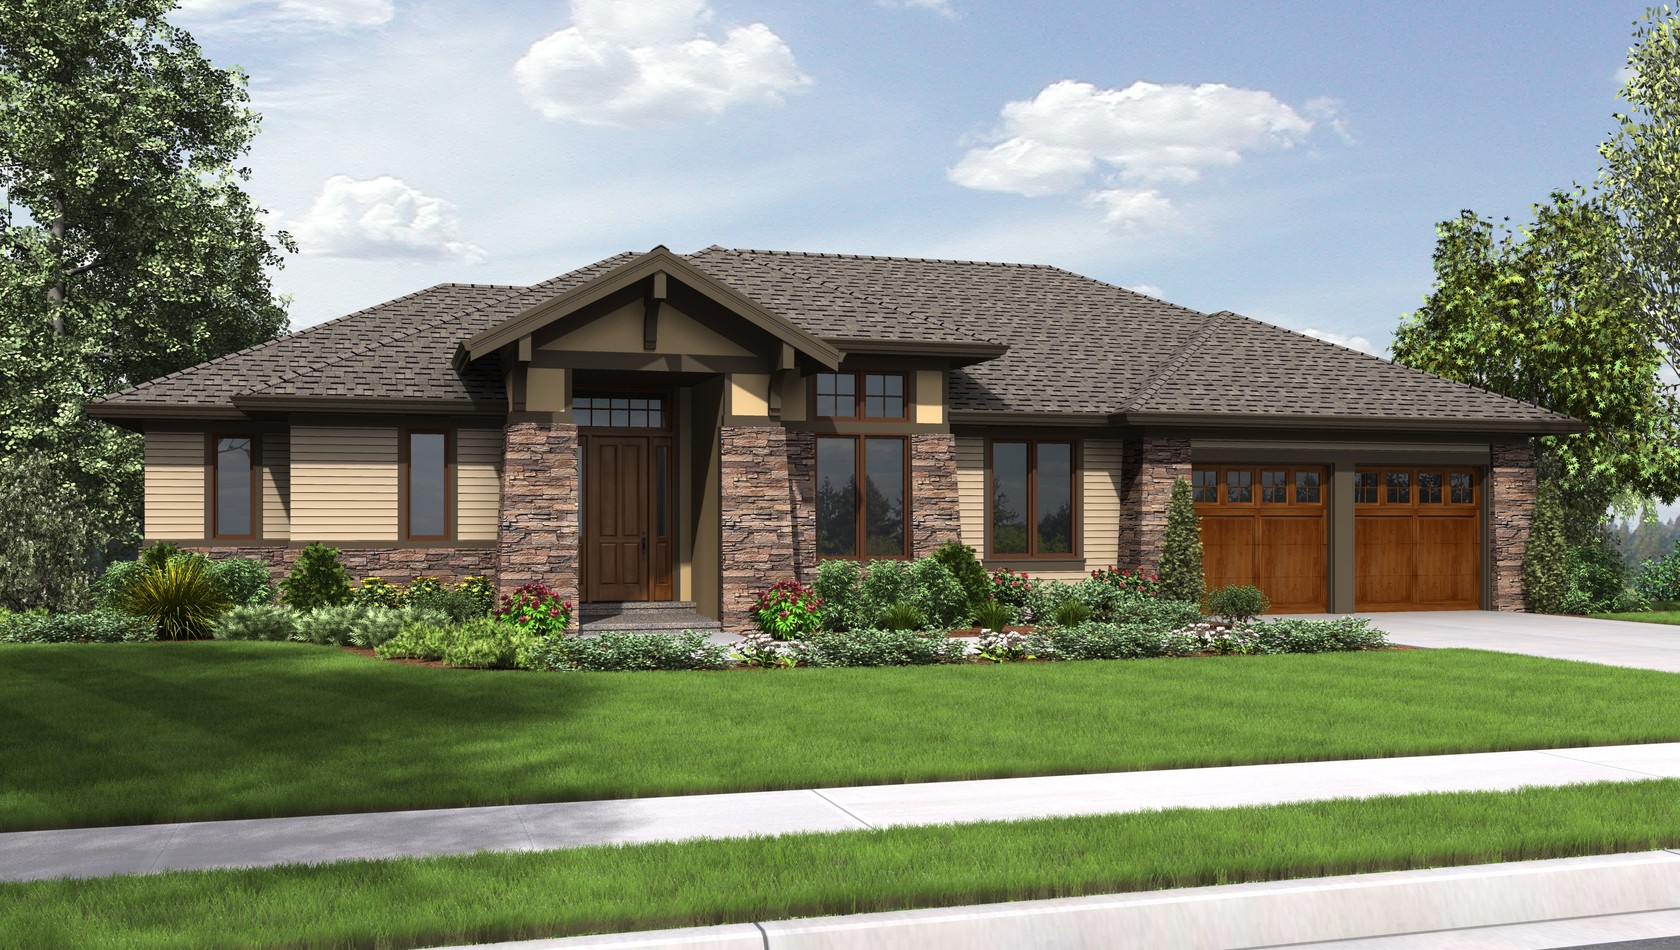 Contemporary House Plan 1339 The Briarwood: 2694 Sqft, 3 ...